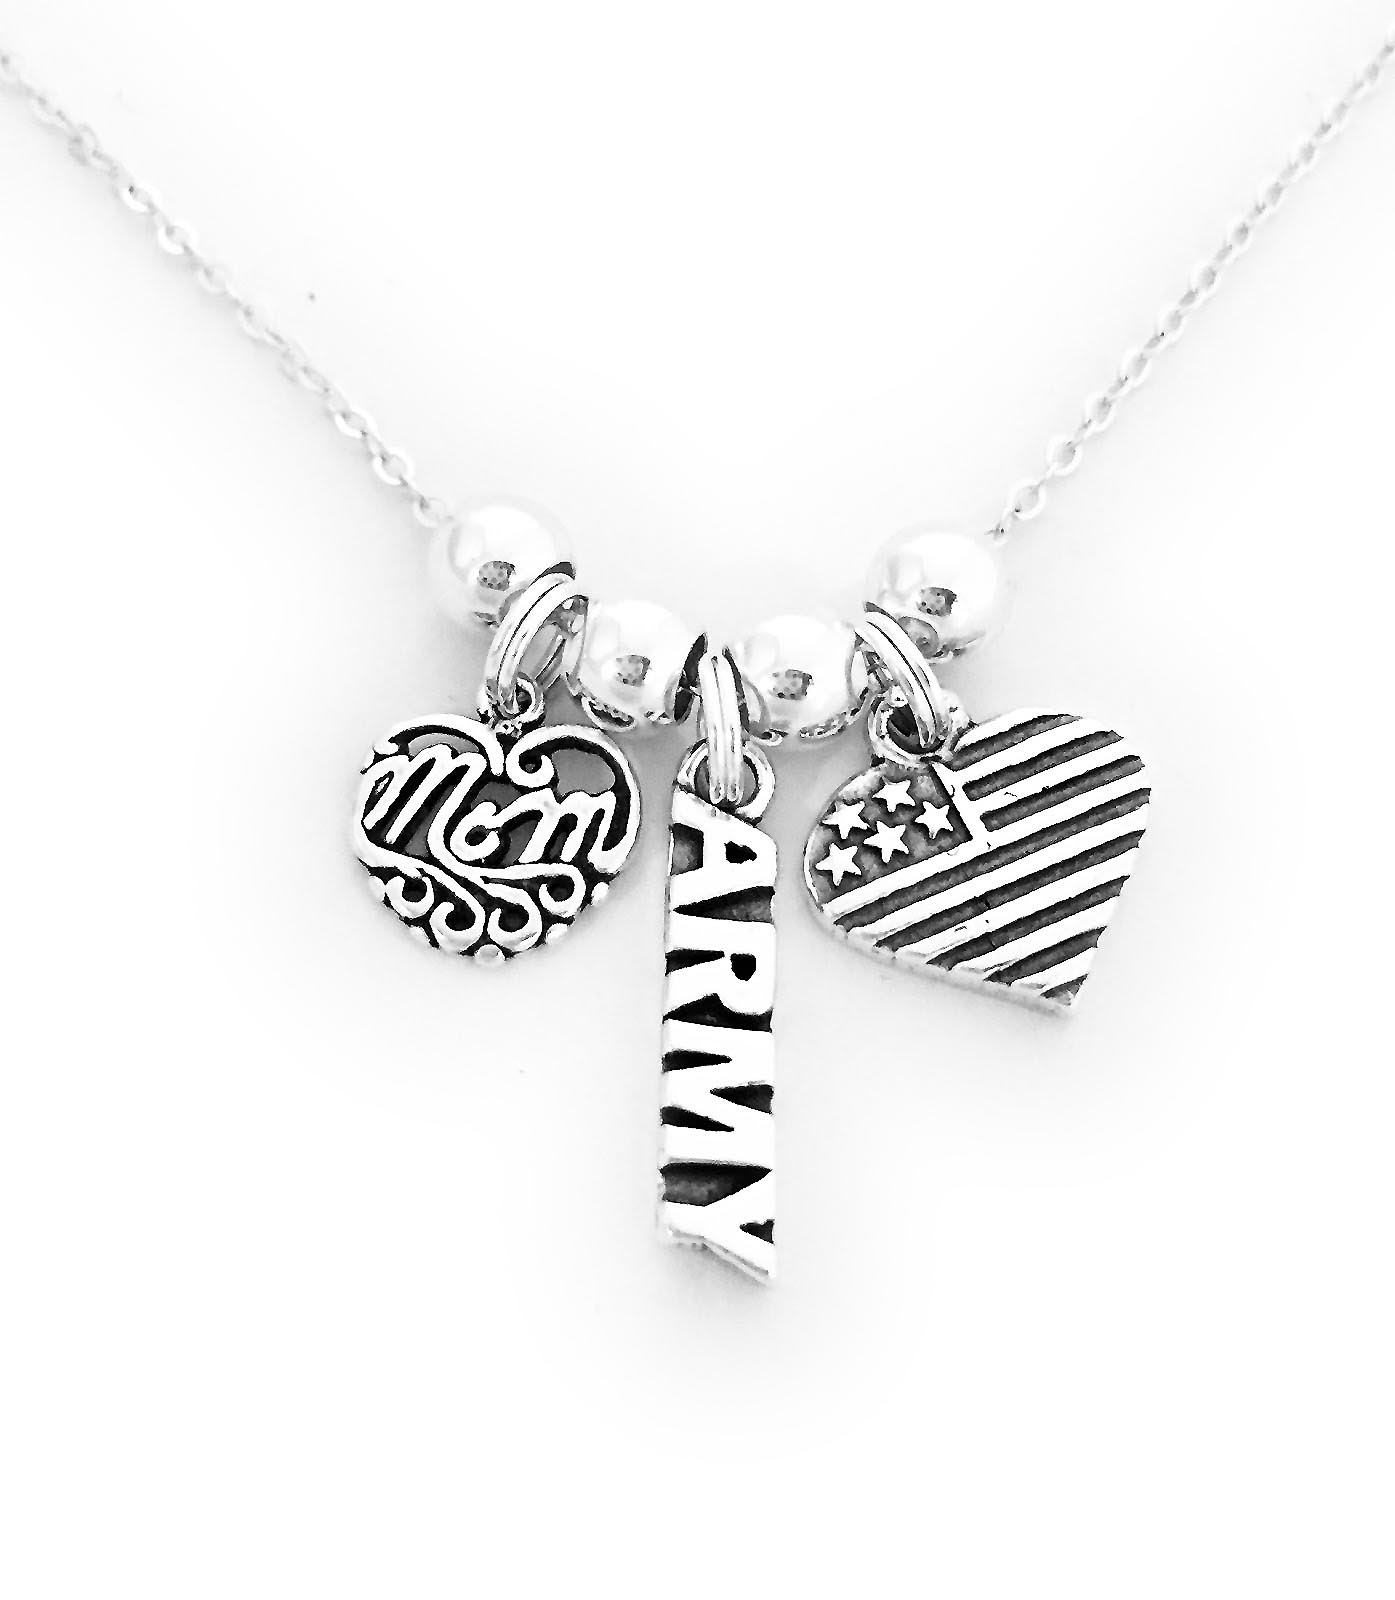 Army Mom Necklace with MOM Charm, Heart Flag Charm